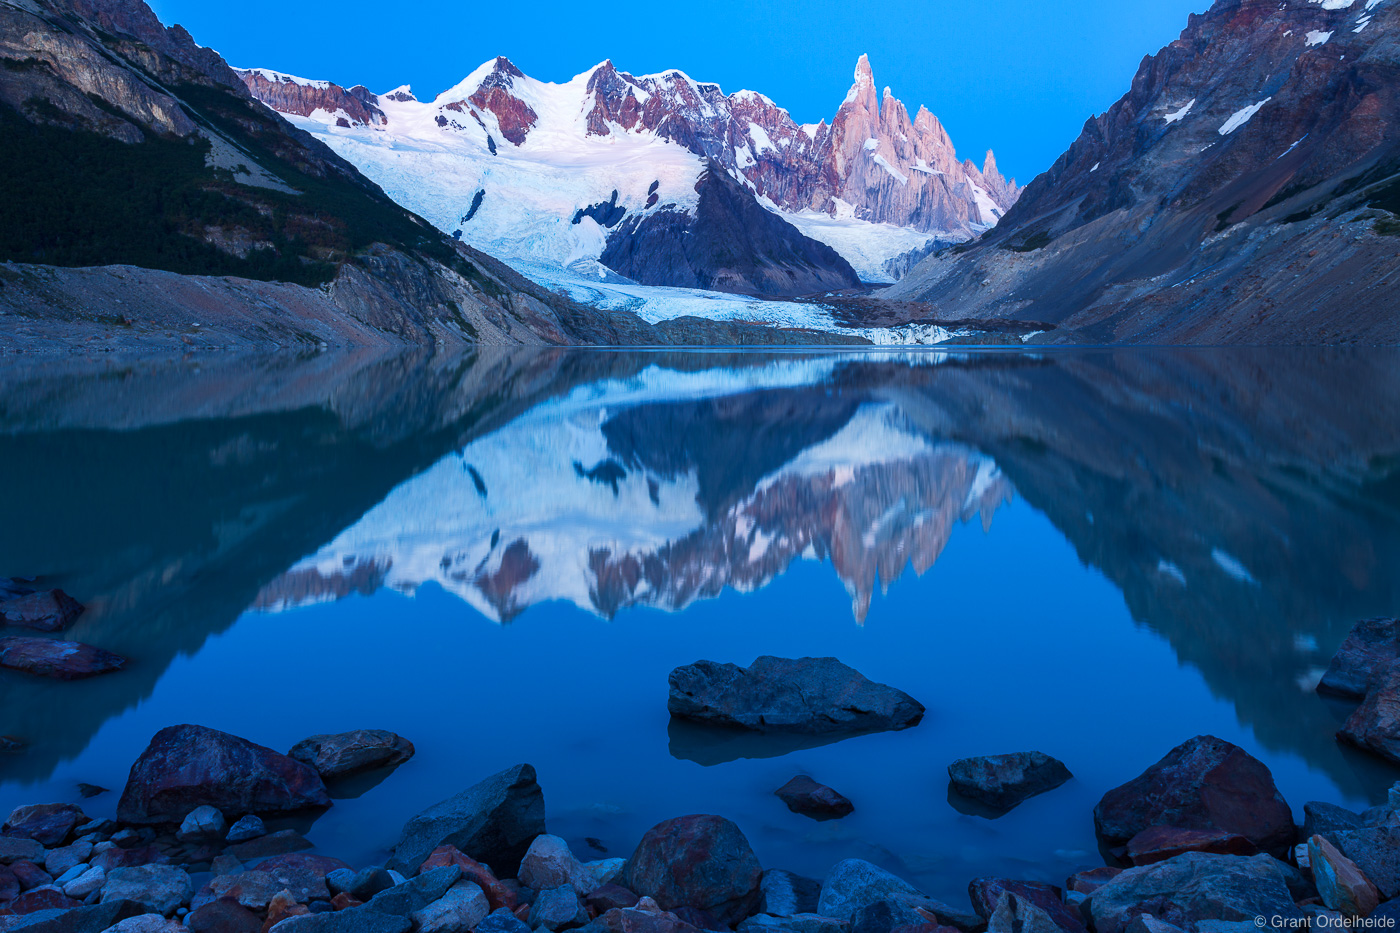 A rare windless morning on Laguna Torre with Cerro Torre towering above.